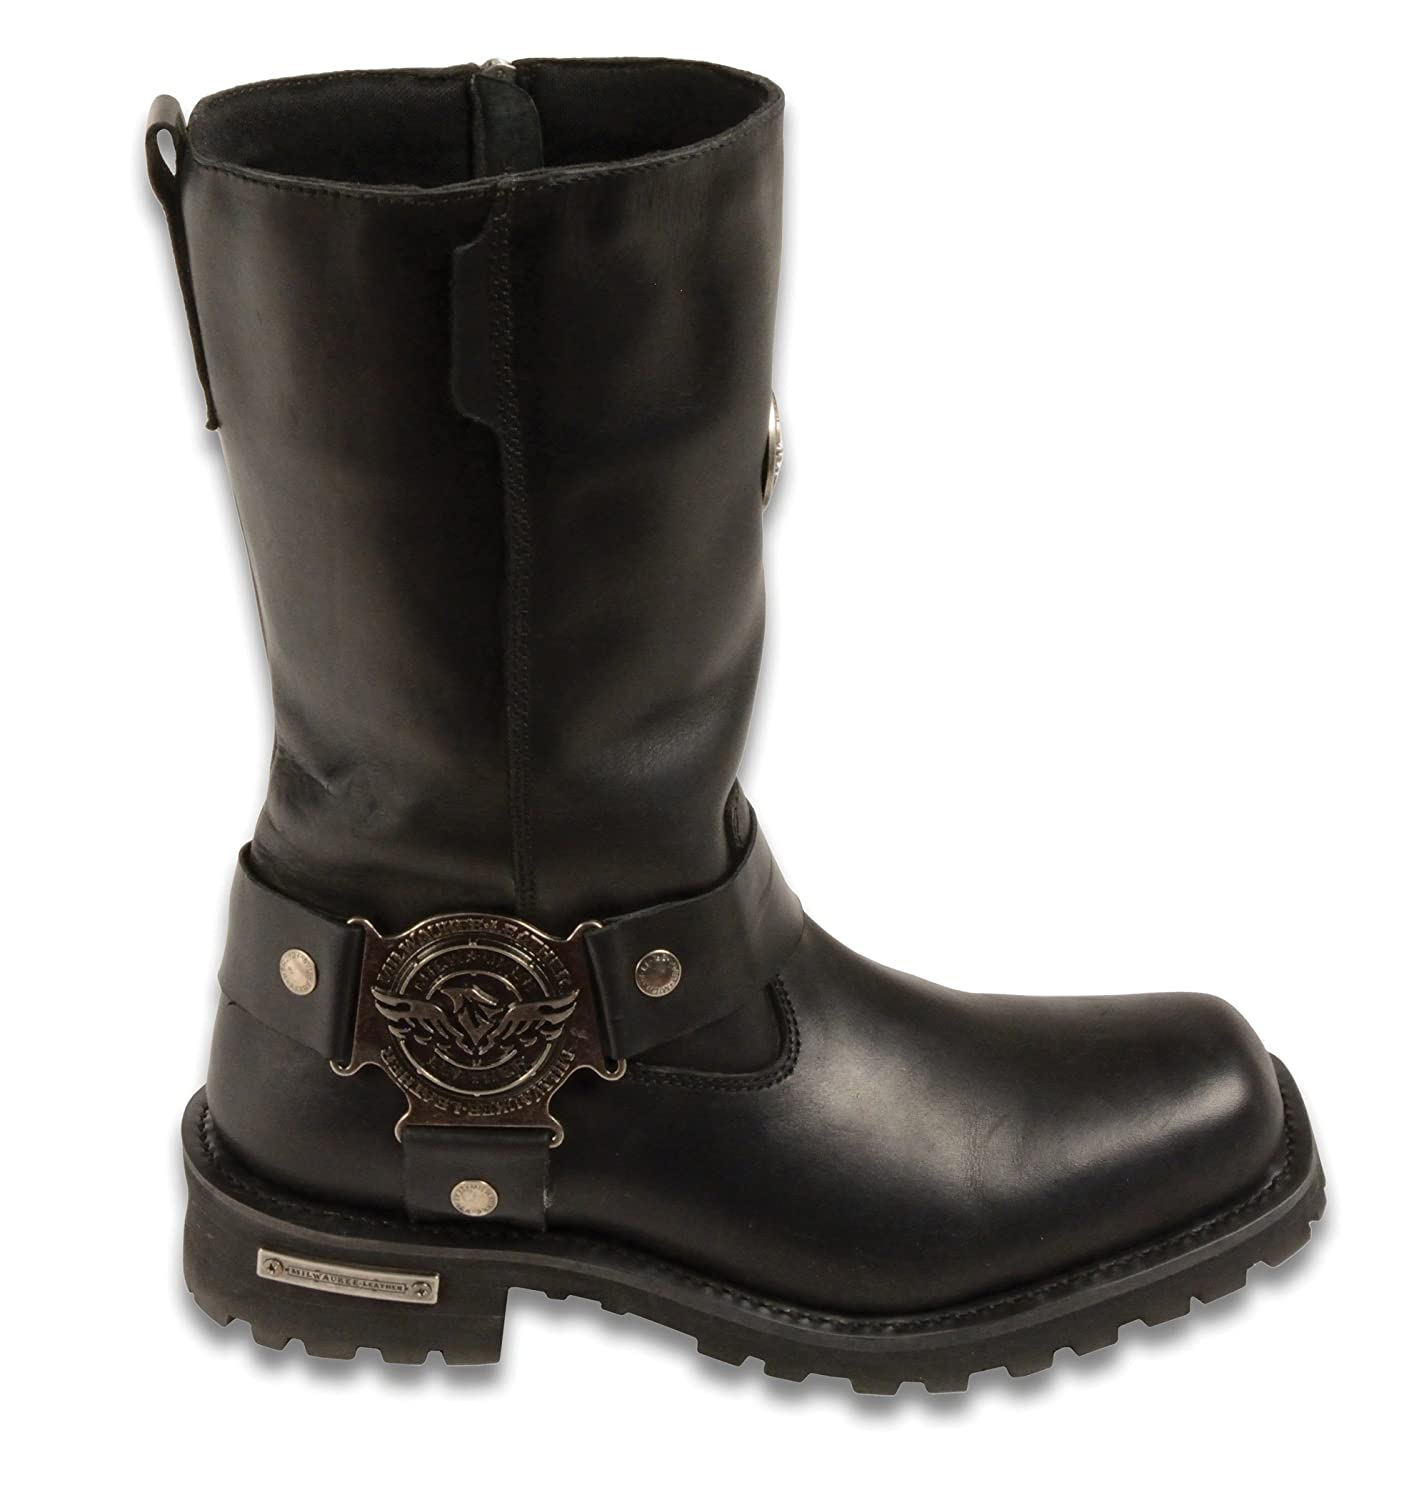 Black, Size 7 Milwaukee Mens Wide Harness Boots with Zip